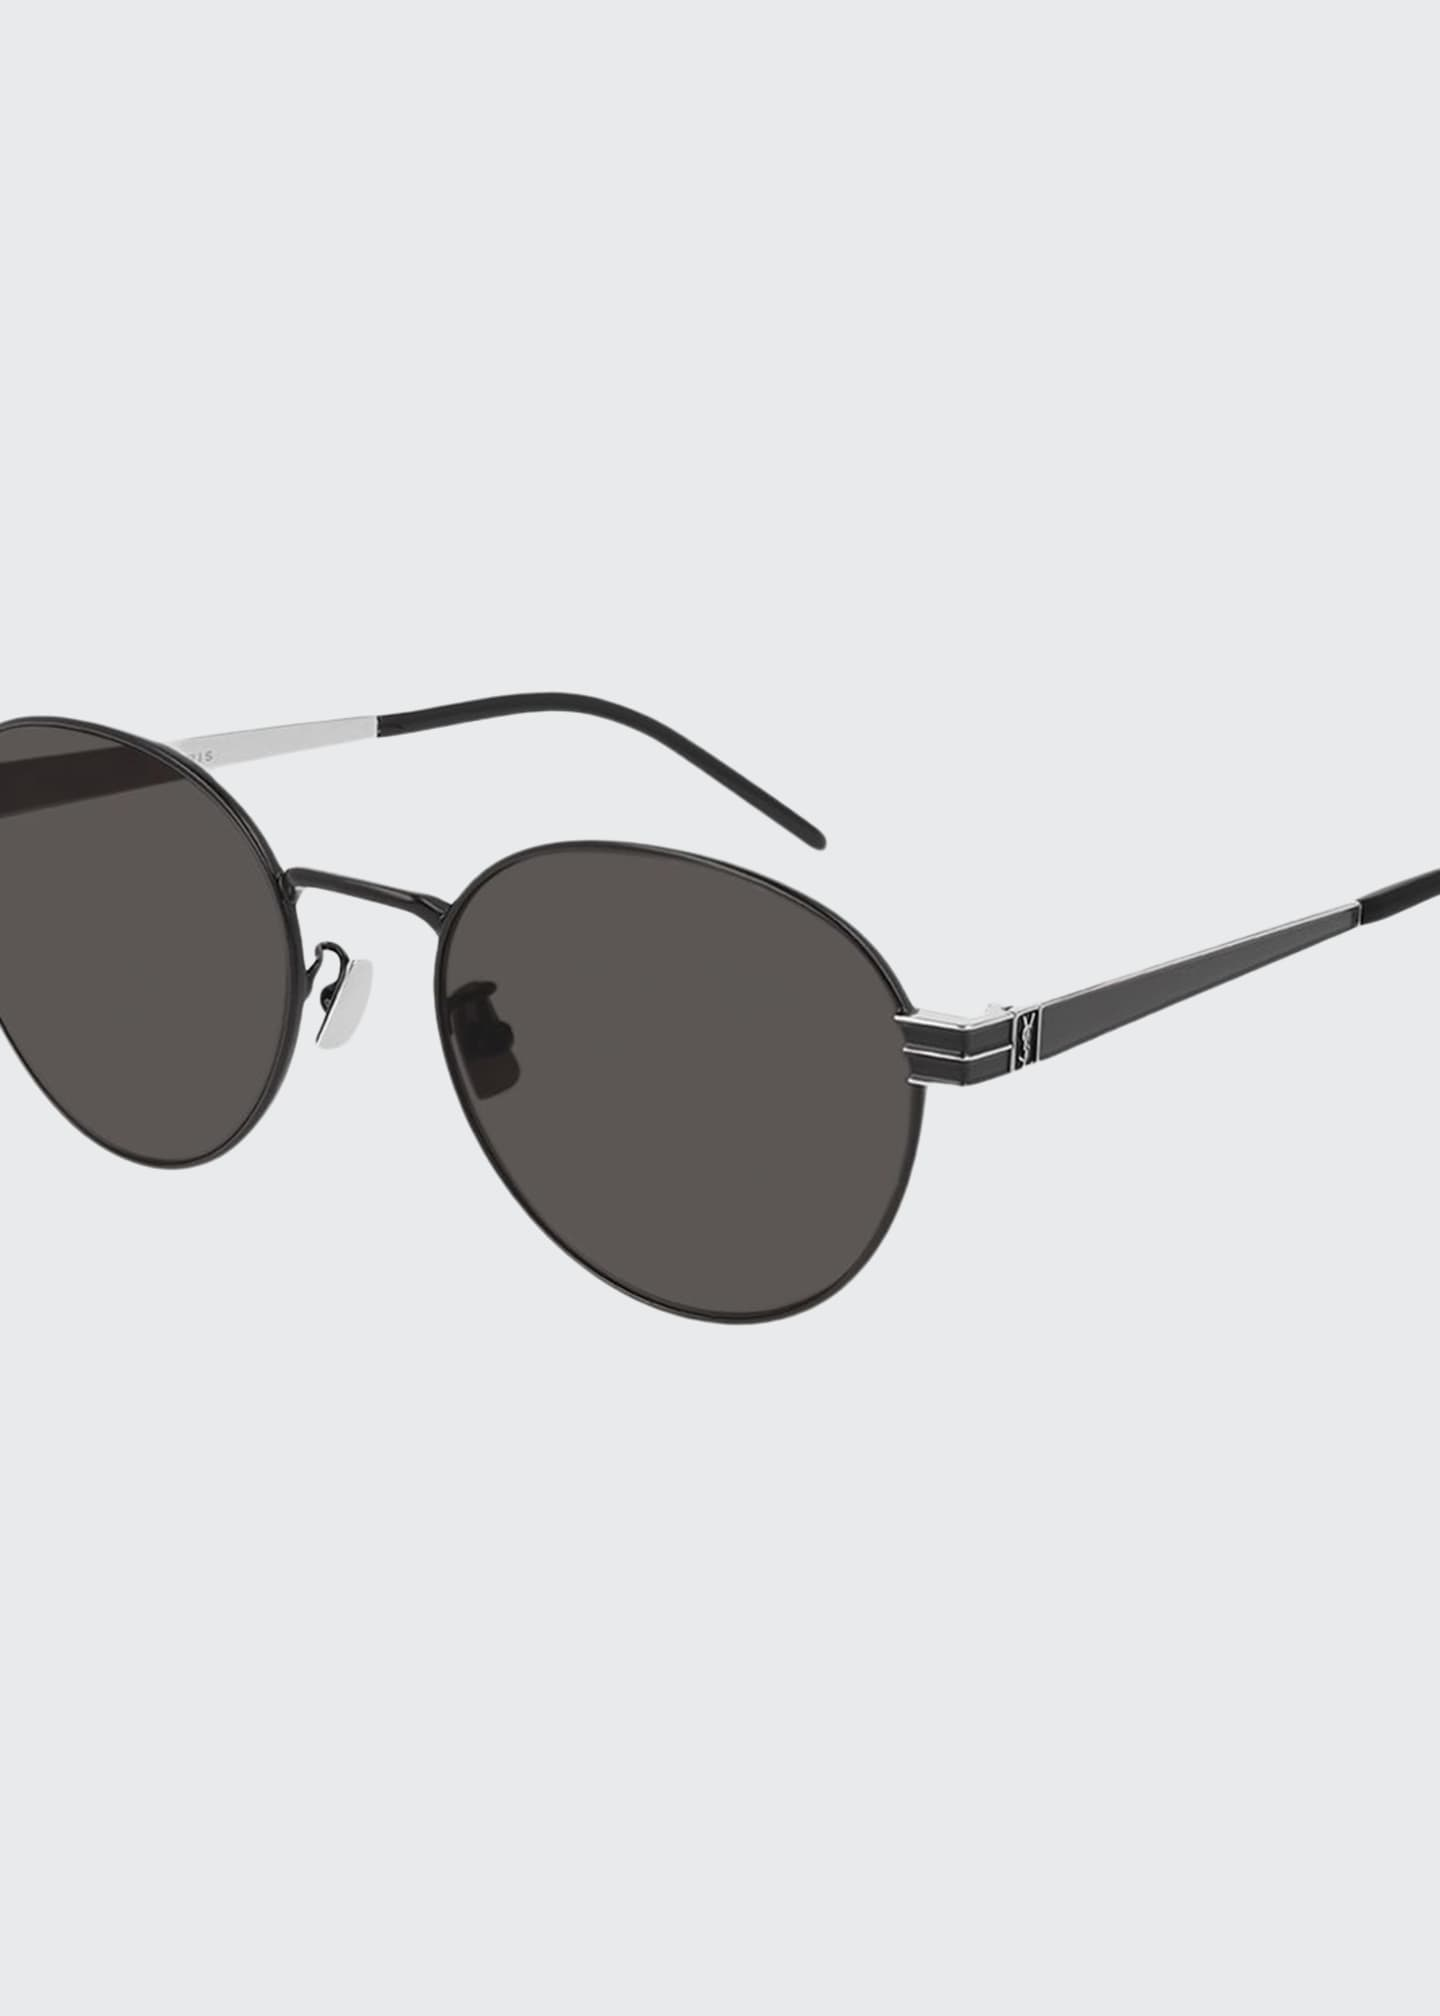 Image 1 of 1: Unisex Round Metal Sunglasses